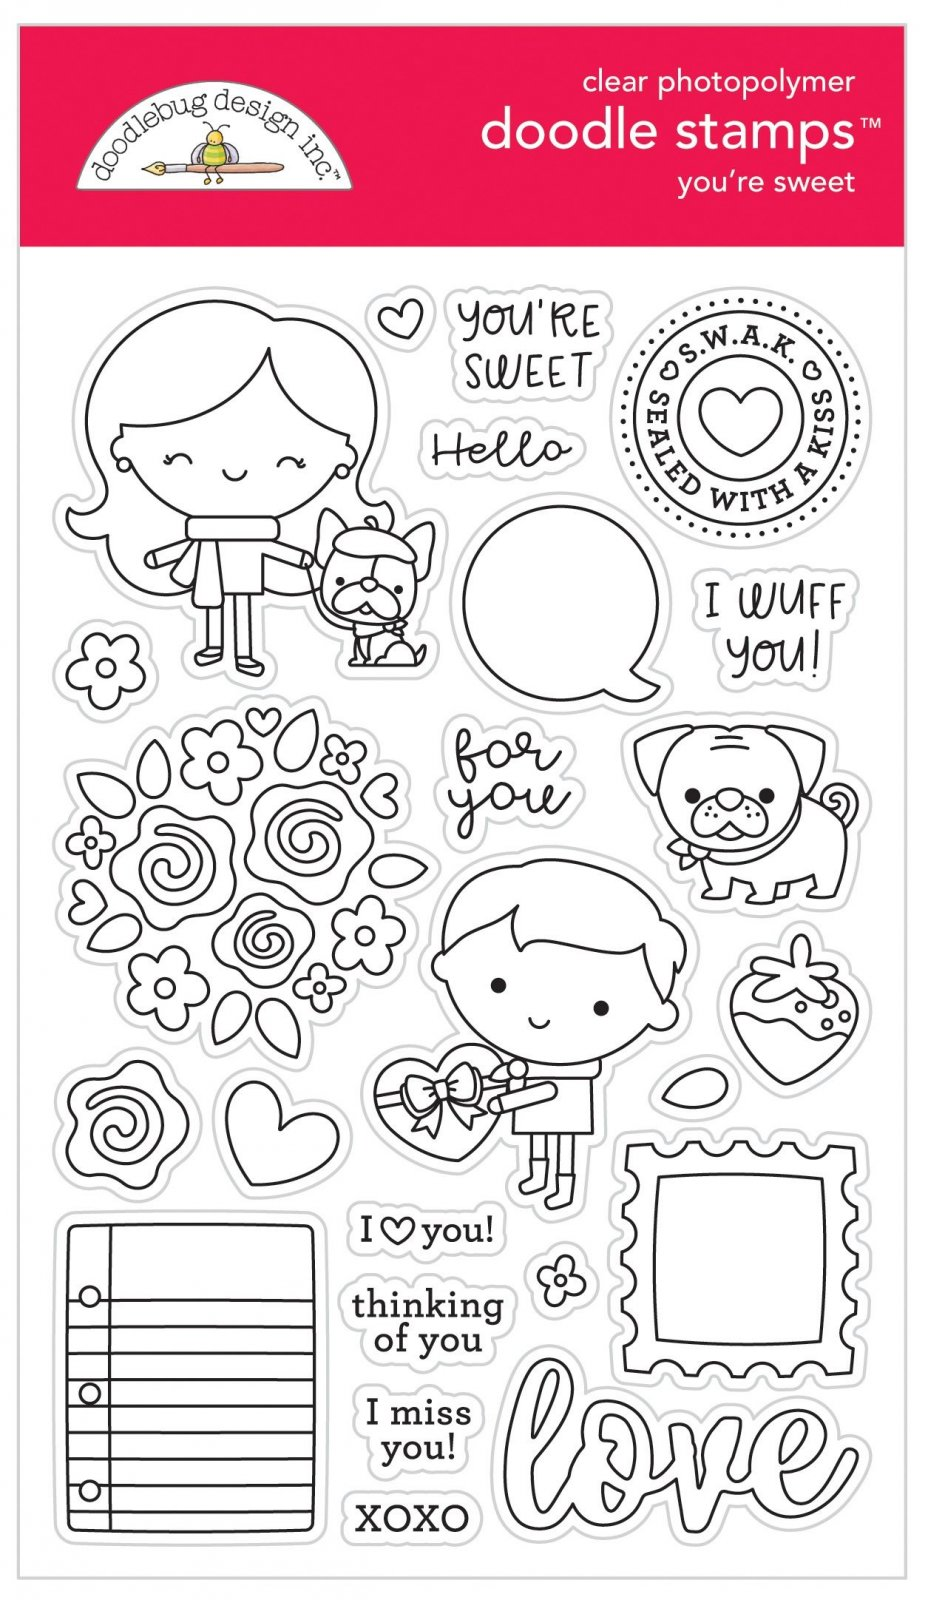 Doodlebug Love Notes Clear Doodle Stamps- You're Sweet